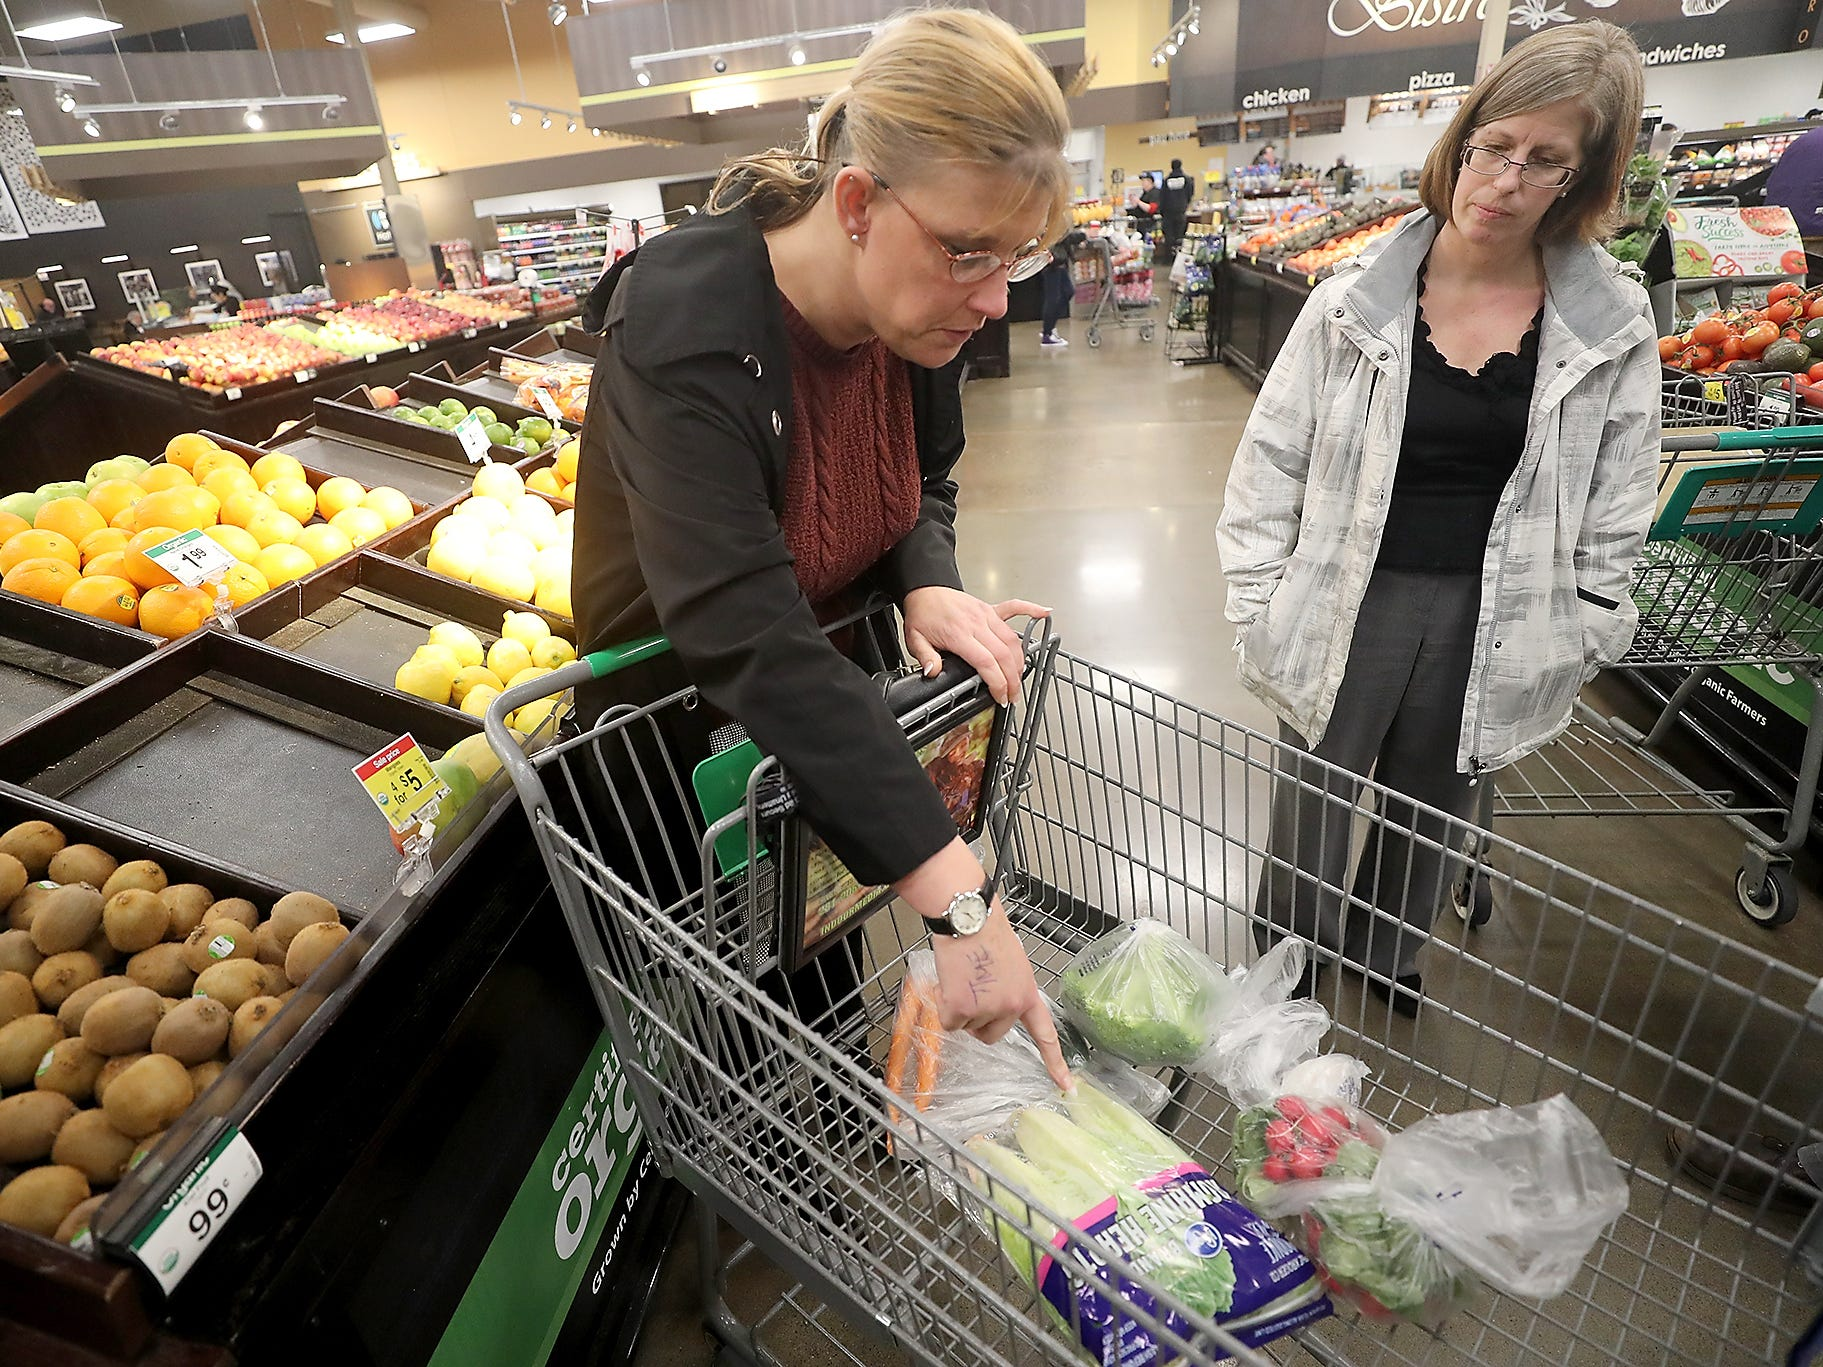 Brandy Mathews (left)  looks over the produce on her cart with Georgene Lenon at Fred Meyer in Bremerton on Wednesday, February 20, 2019.